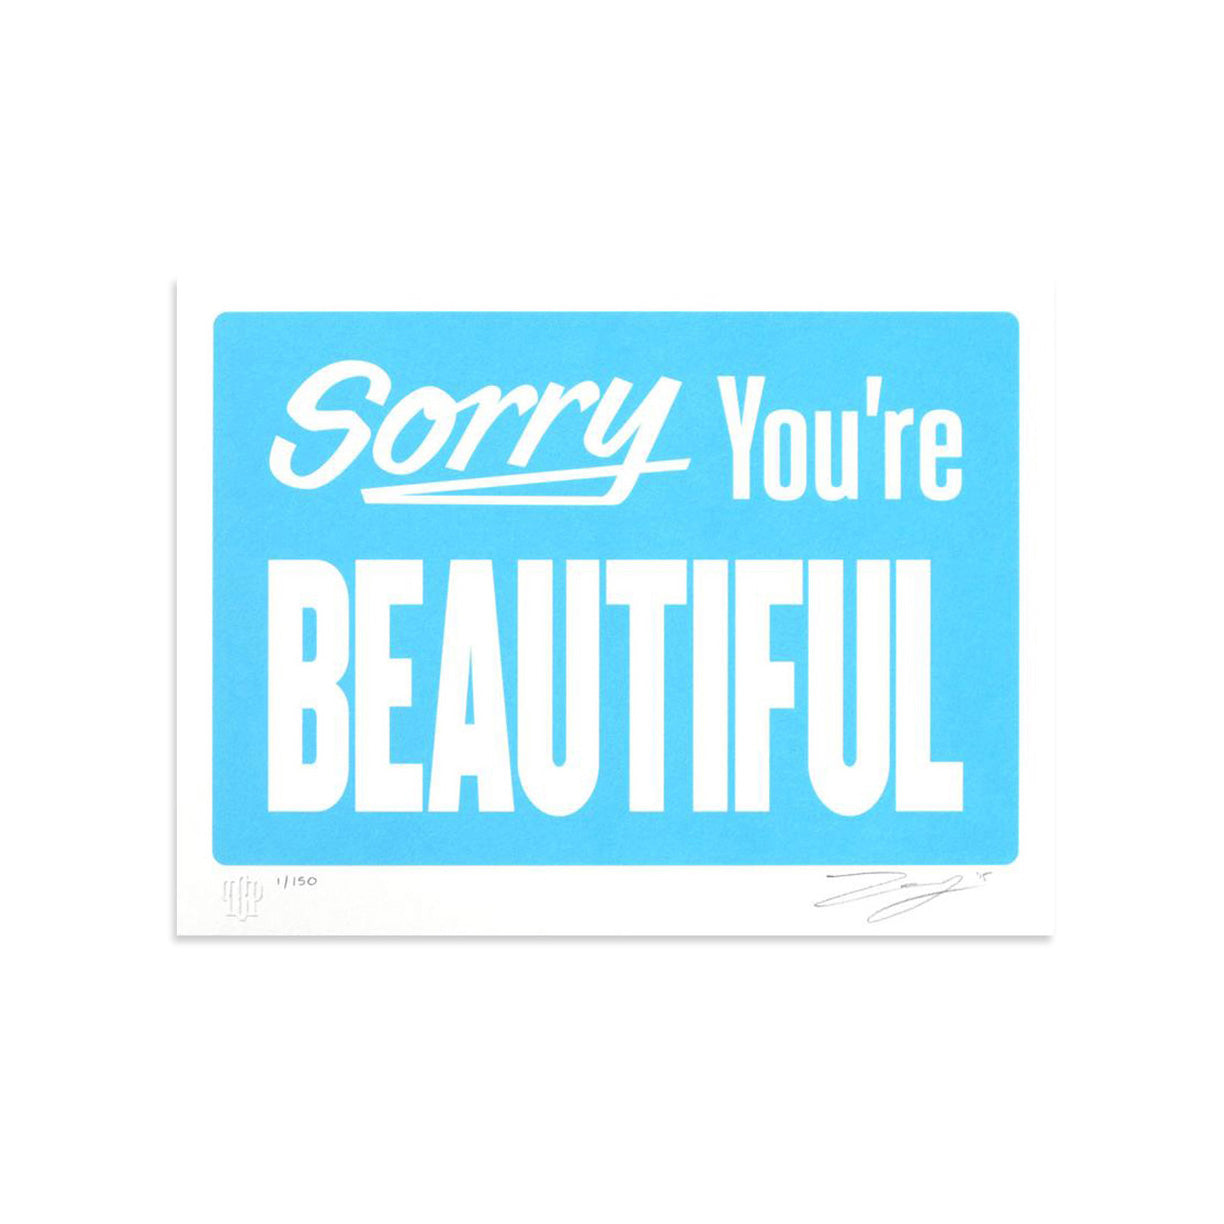 Sorry You're Beautiful - Pastel Blue by Michael Coleman | Print | Poster Child Prints